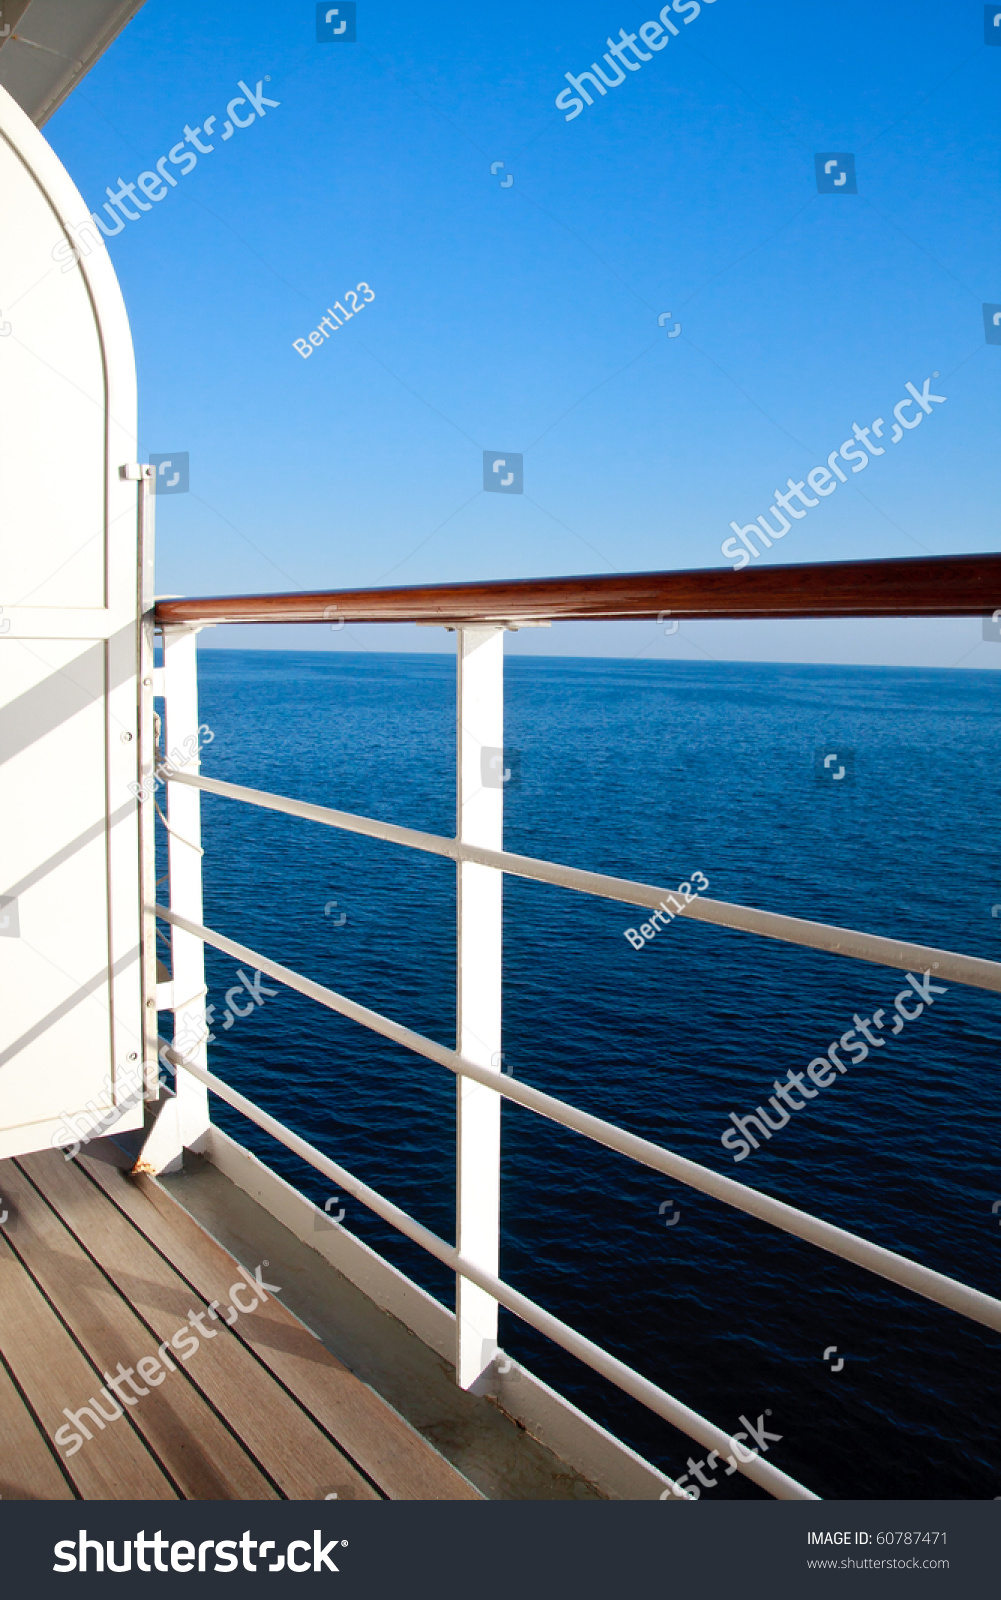 Luxurious cruise ship balcony view on blue ocean stock for Balcony on cruise ship